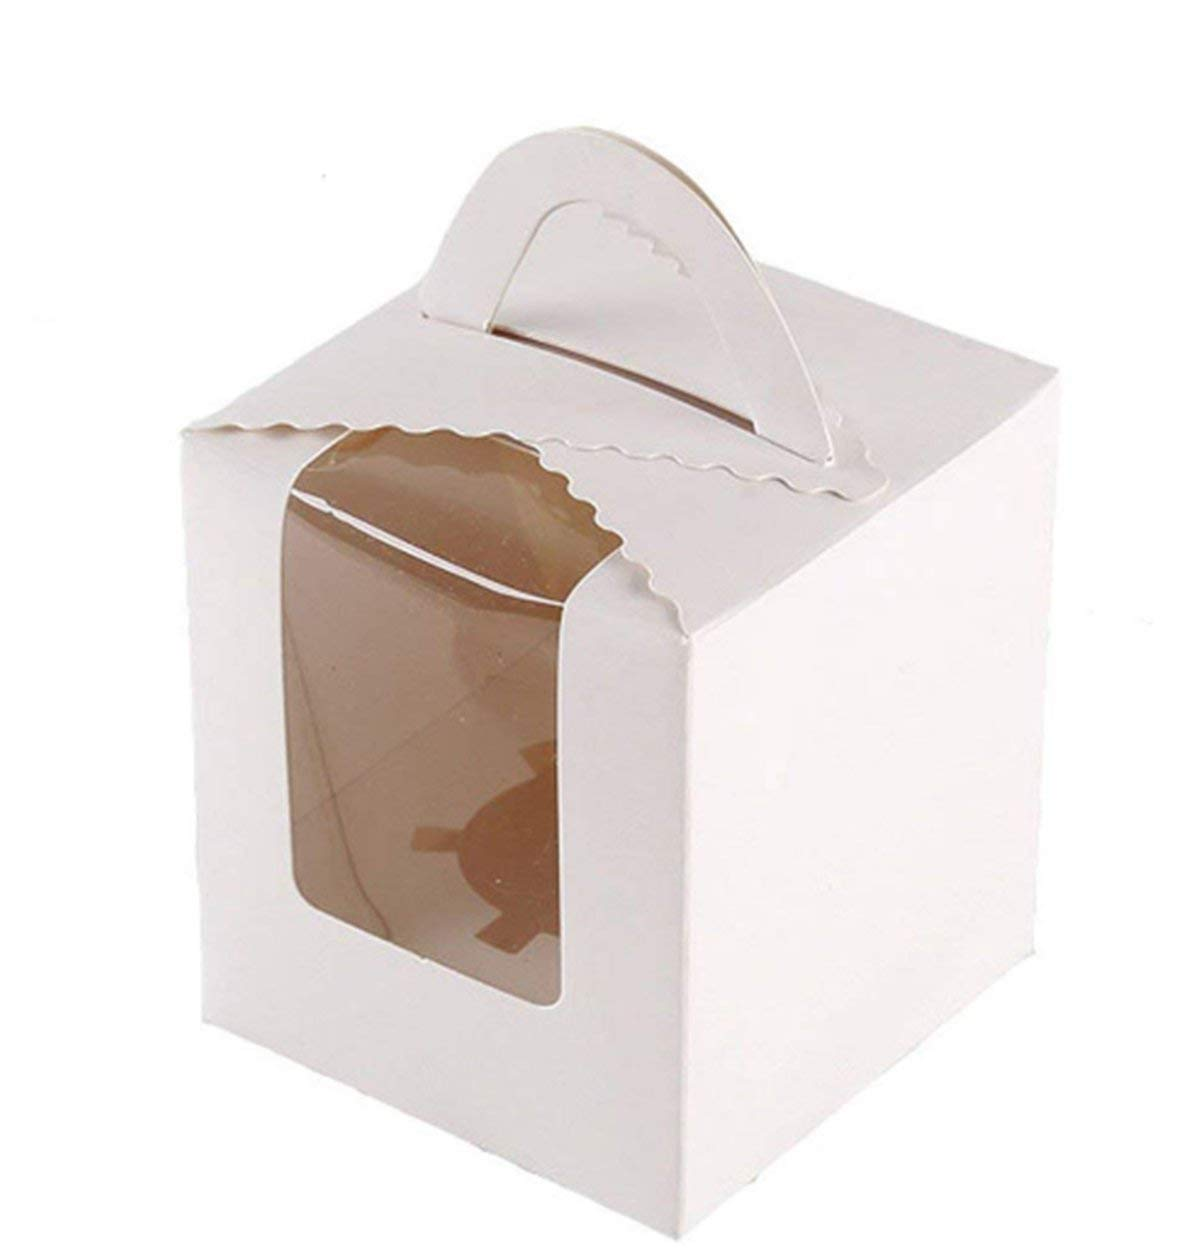 100 Pcs Single White Cupcakes Containers Gift Boxes with Window Inserts Handle for Wedding Candy Boxes by ihomecooker (Image #1)